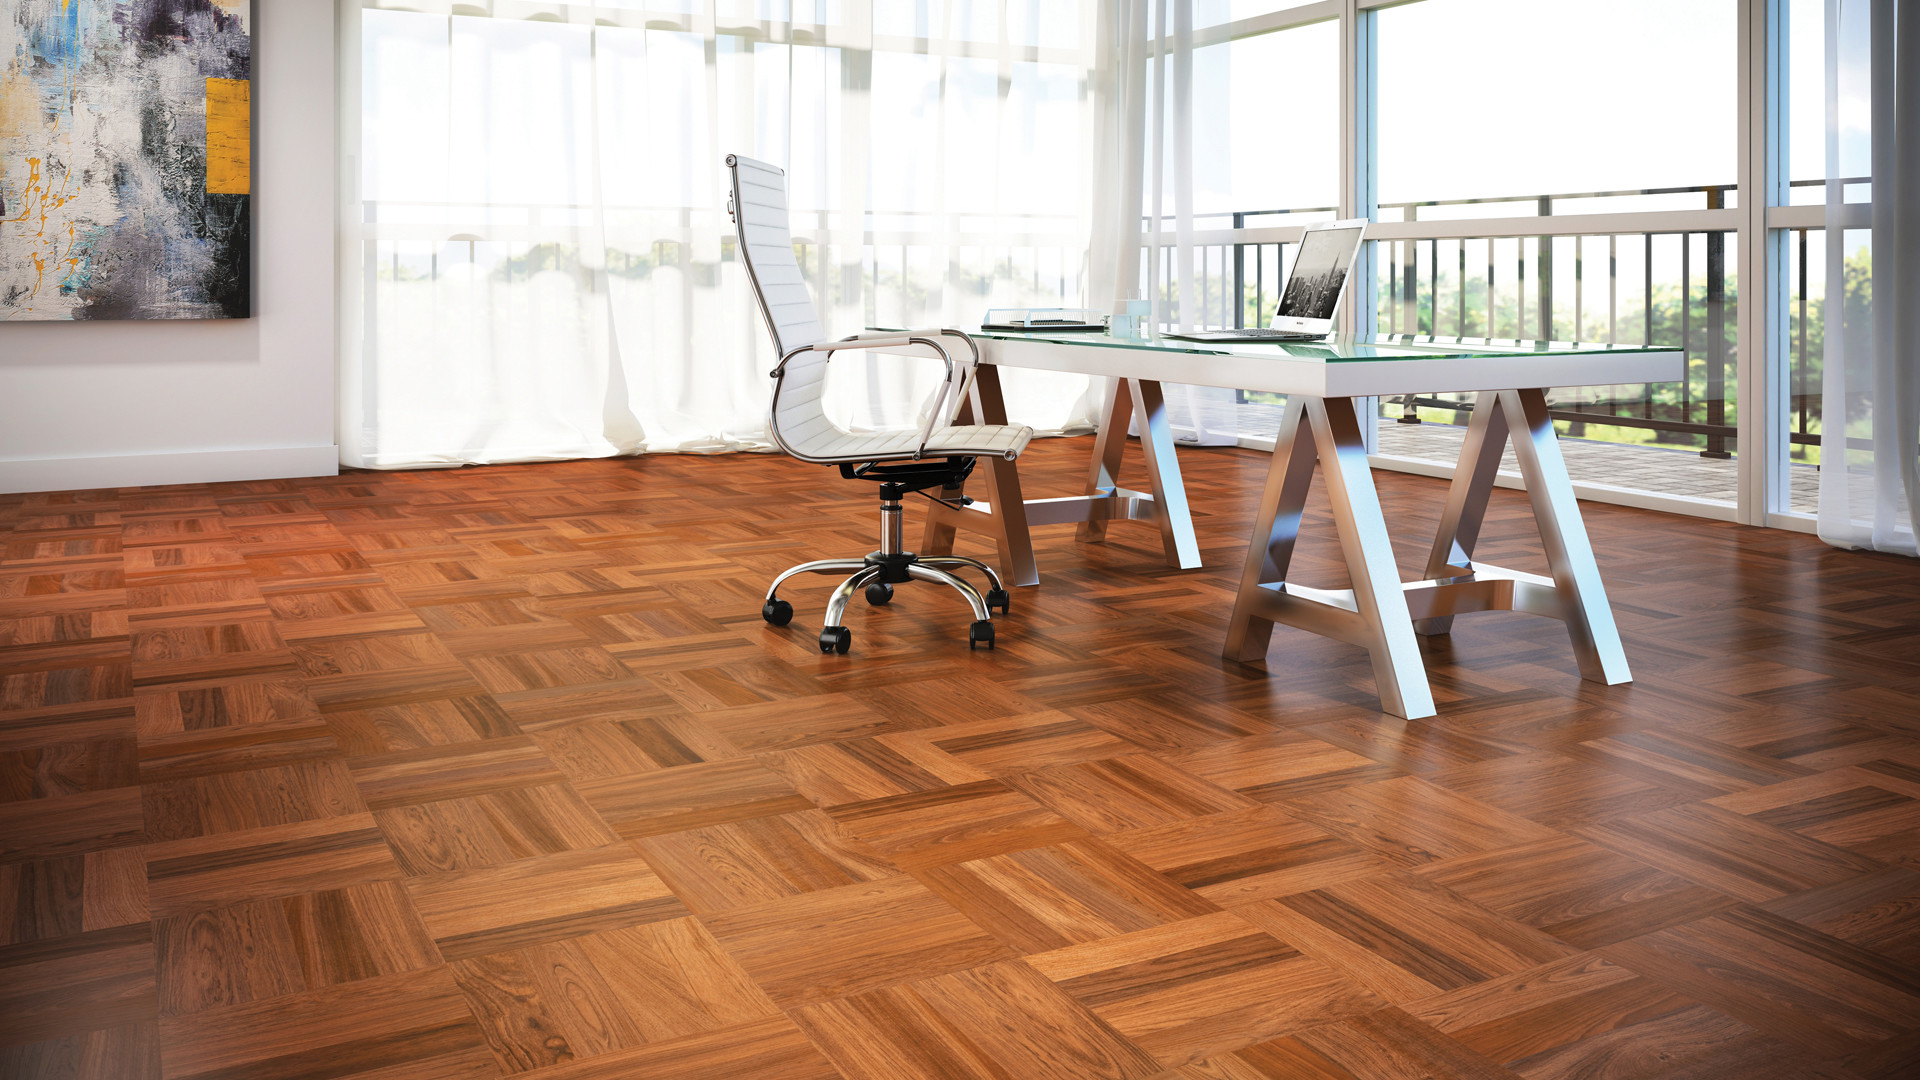 wide plank hardwood flooring canada of 4 latest hardwood flooring trends of 2018 lauzon flooring throughout floors made out of our domestic species hard maple red oak and yellow birch from our ambiance collection are now offered in wider and longer